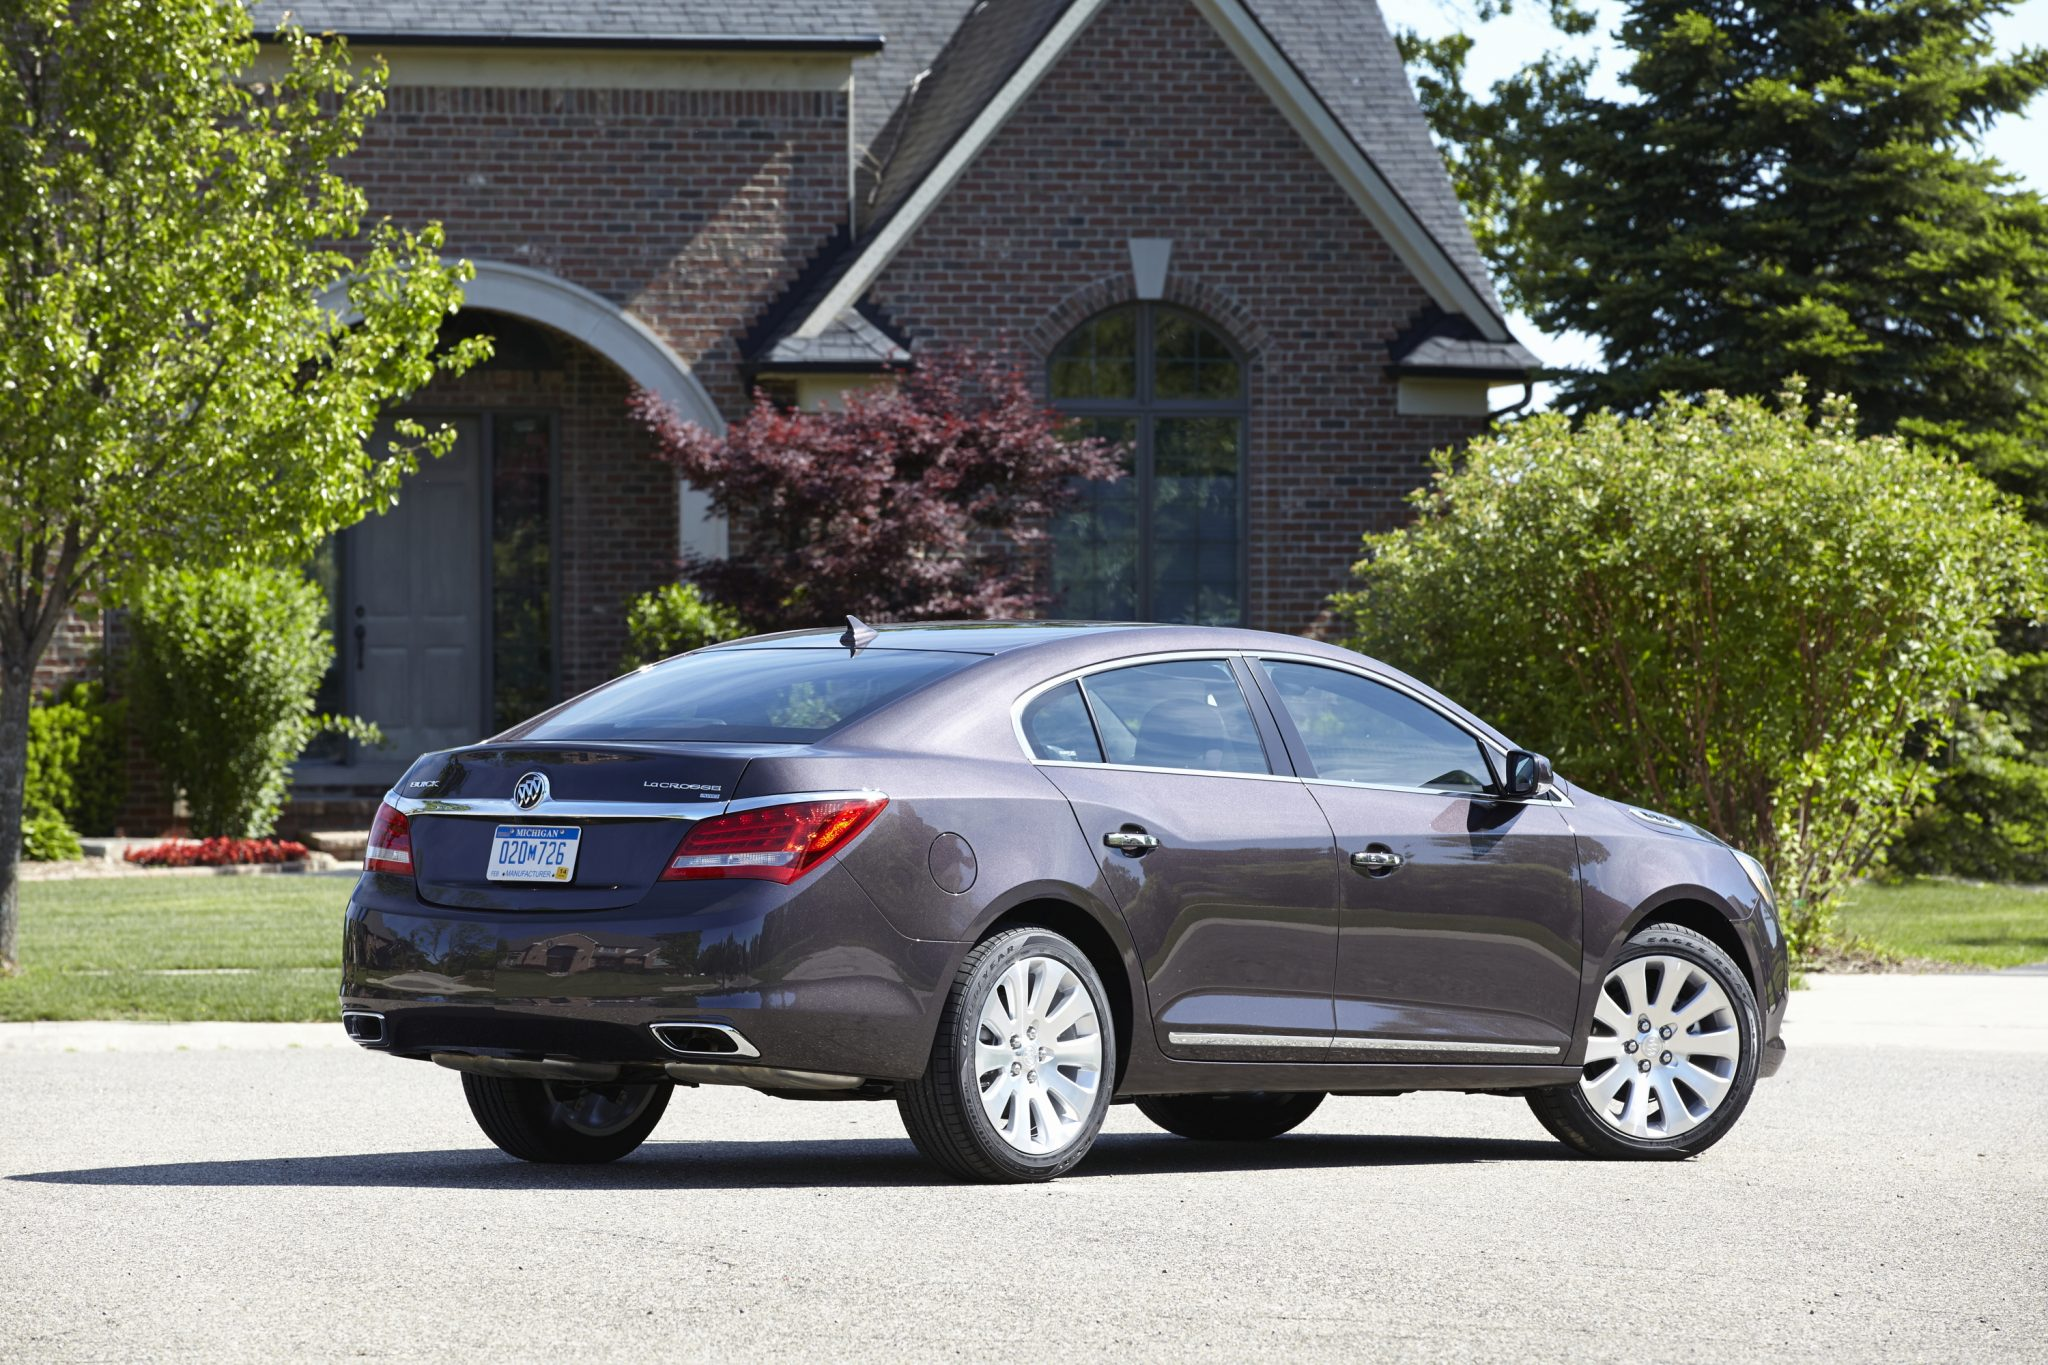 2015 Buick LaCrosse: Best Car for Road Trips